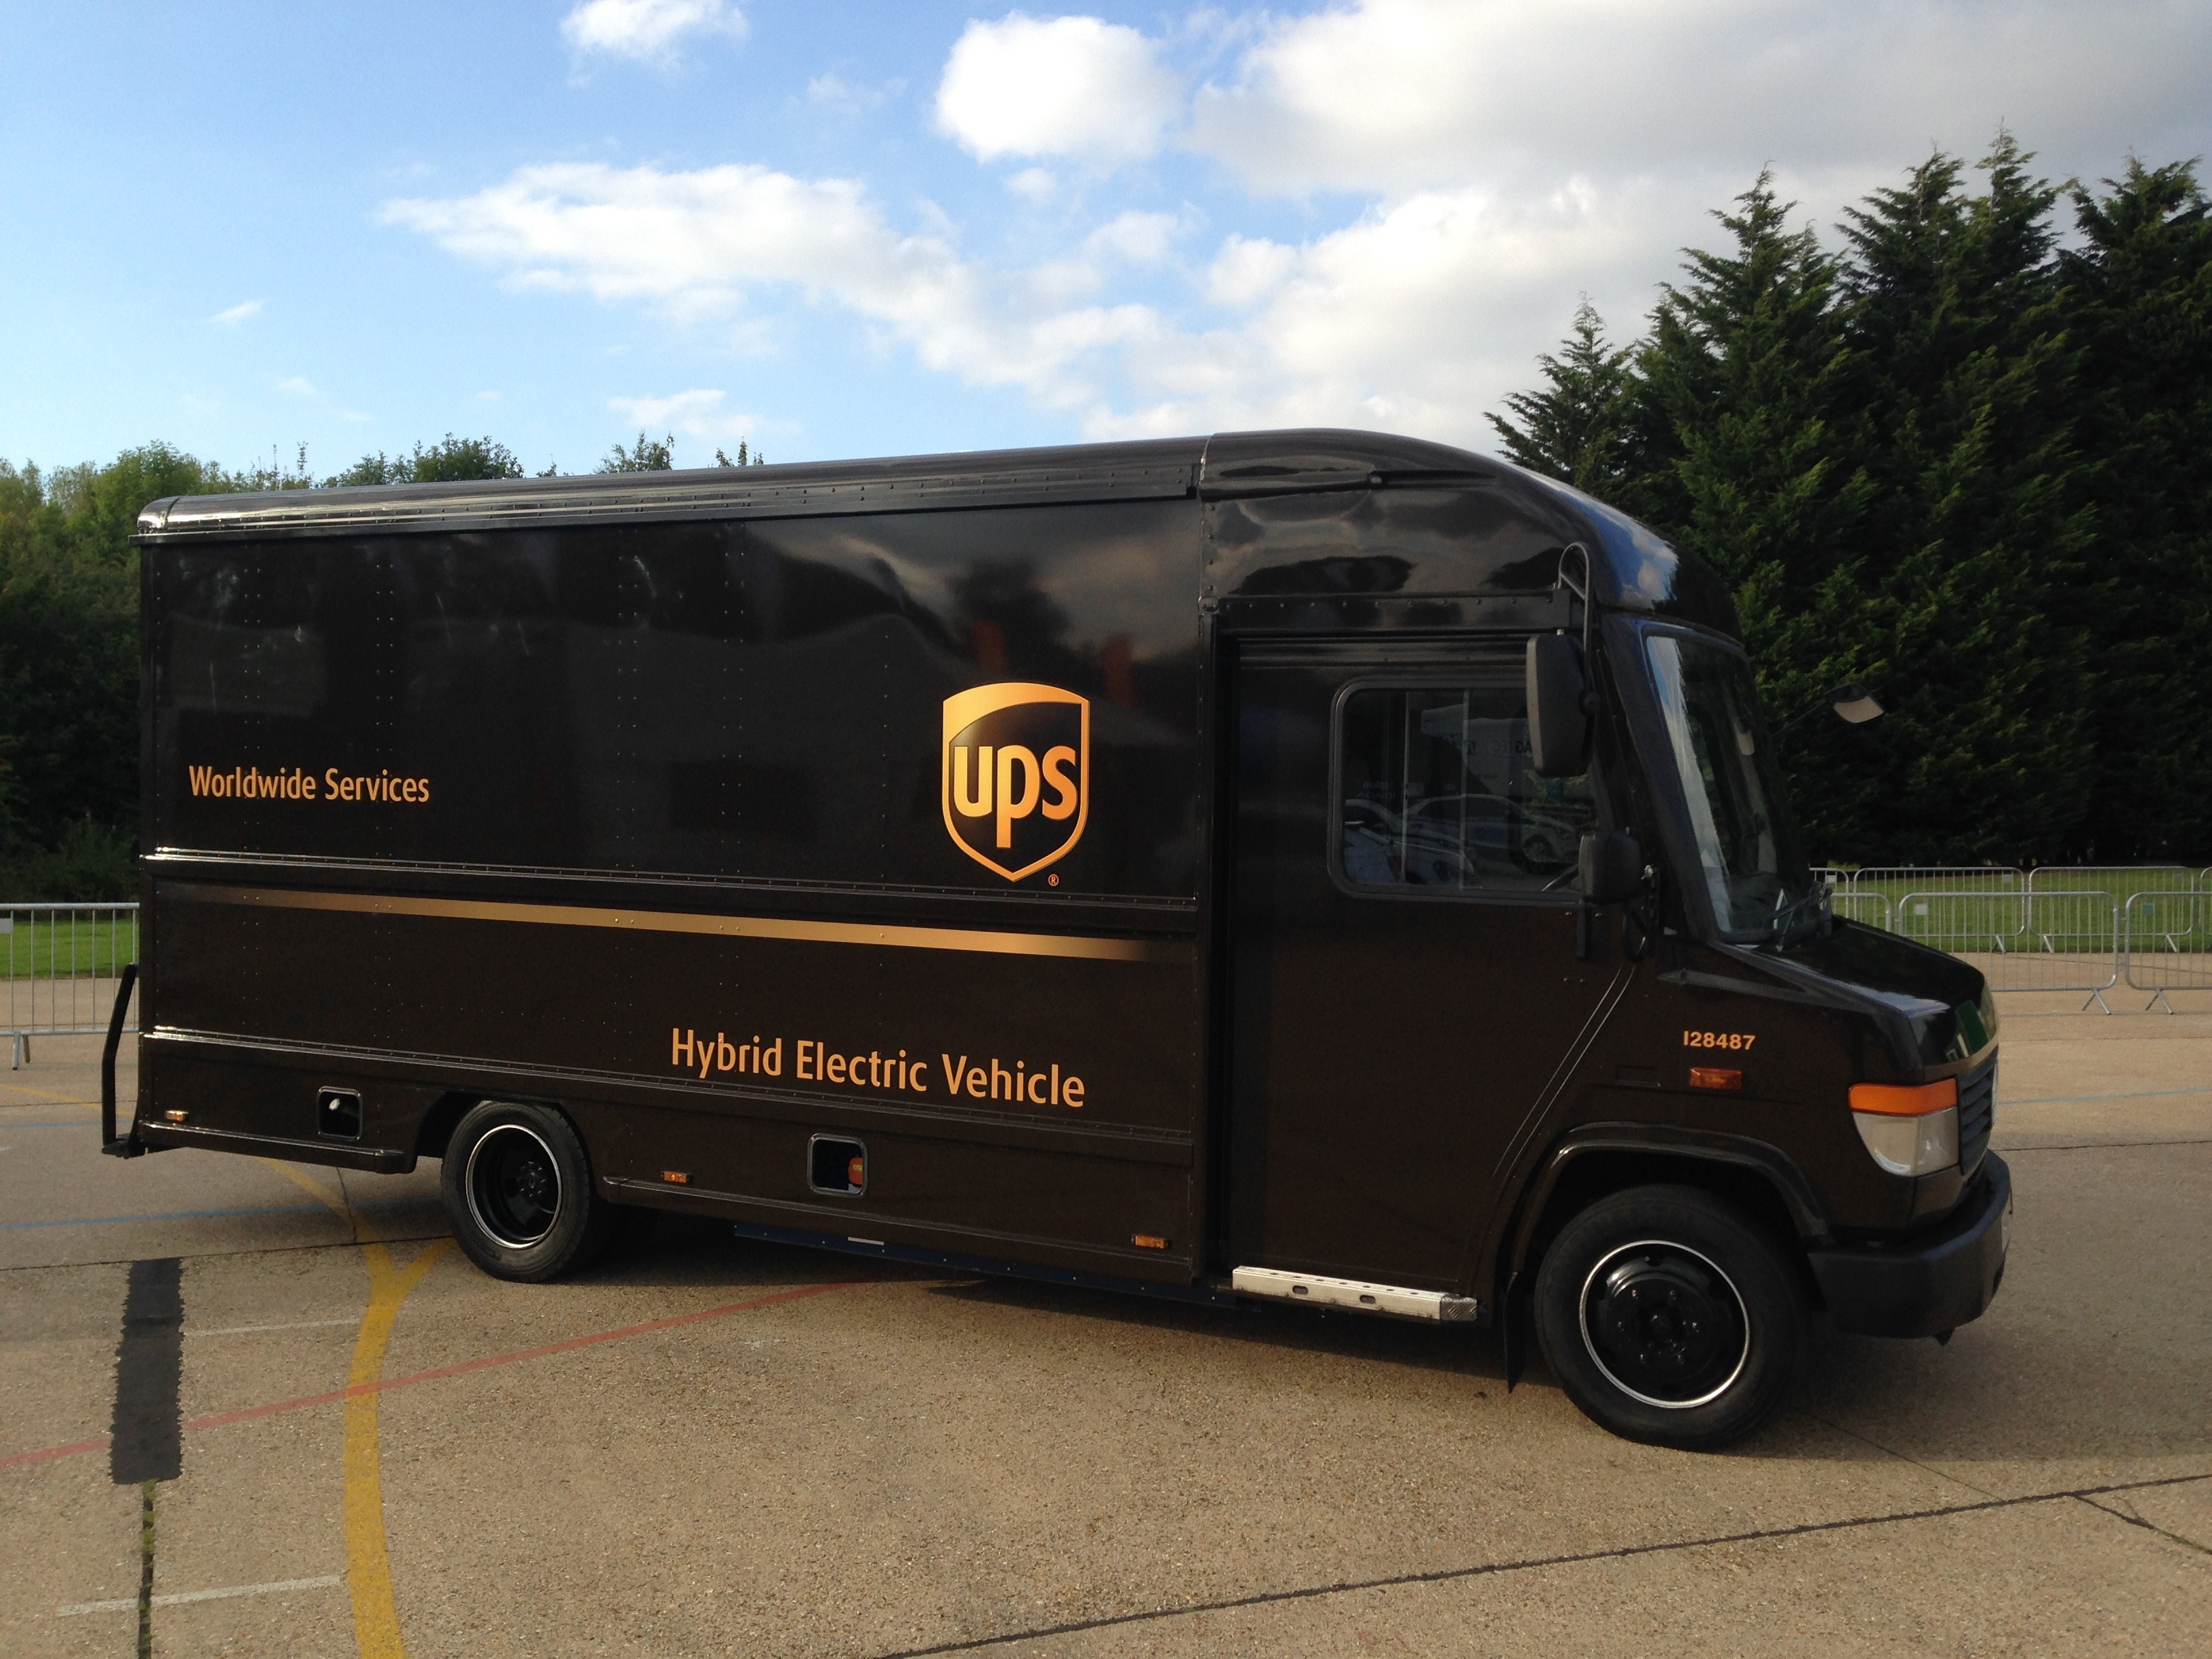 Ups Delivery Logistics Manager Maga...